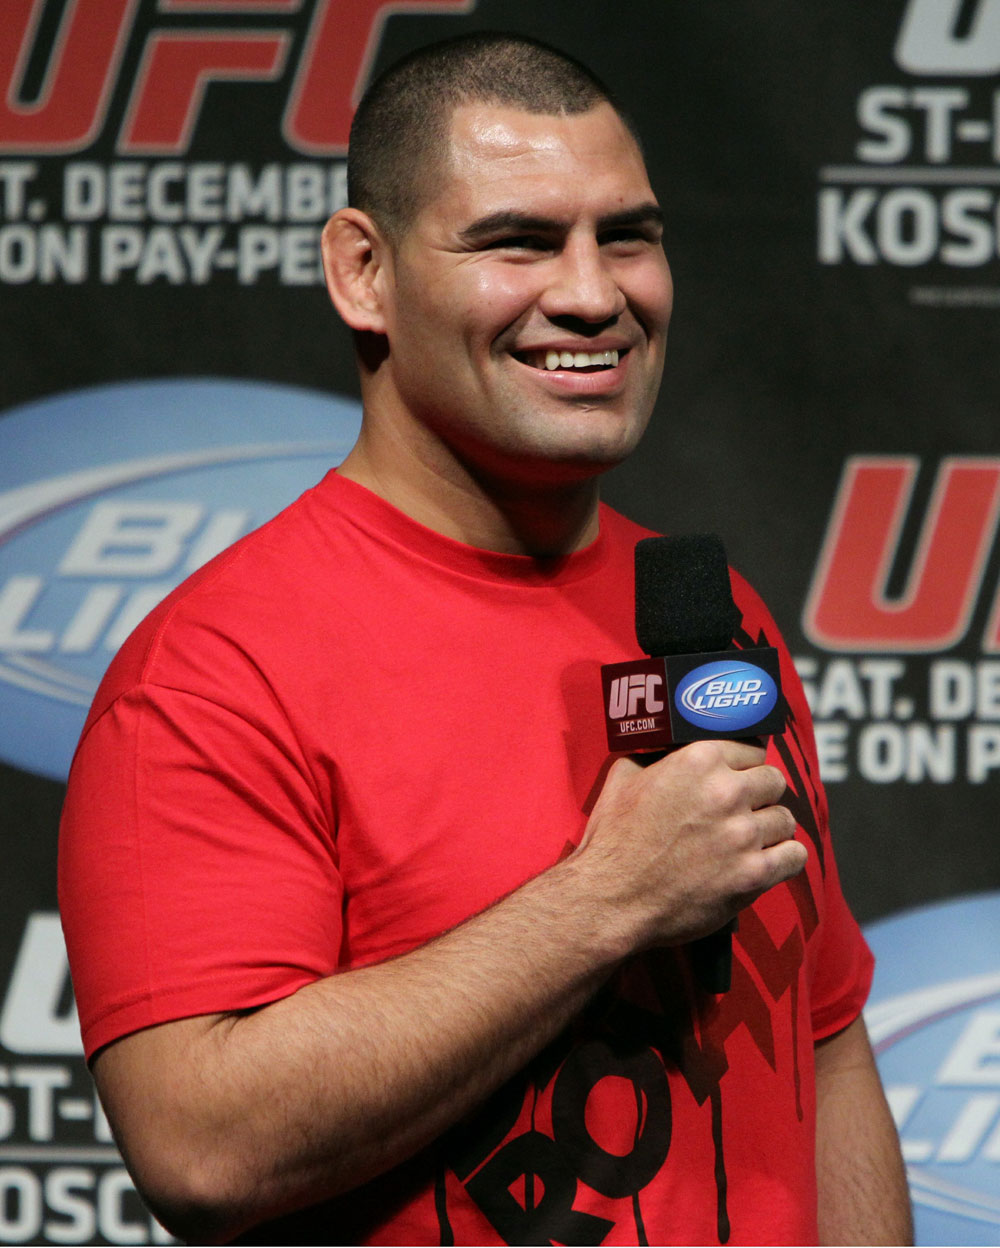 UFC 124 Weigh-in: Cain Velasquez answers questions from the crowd.